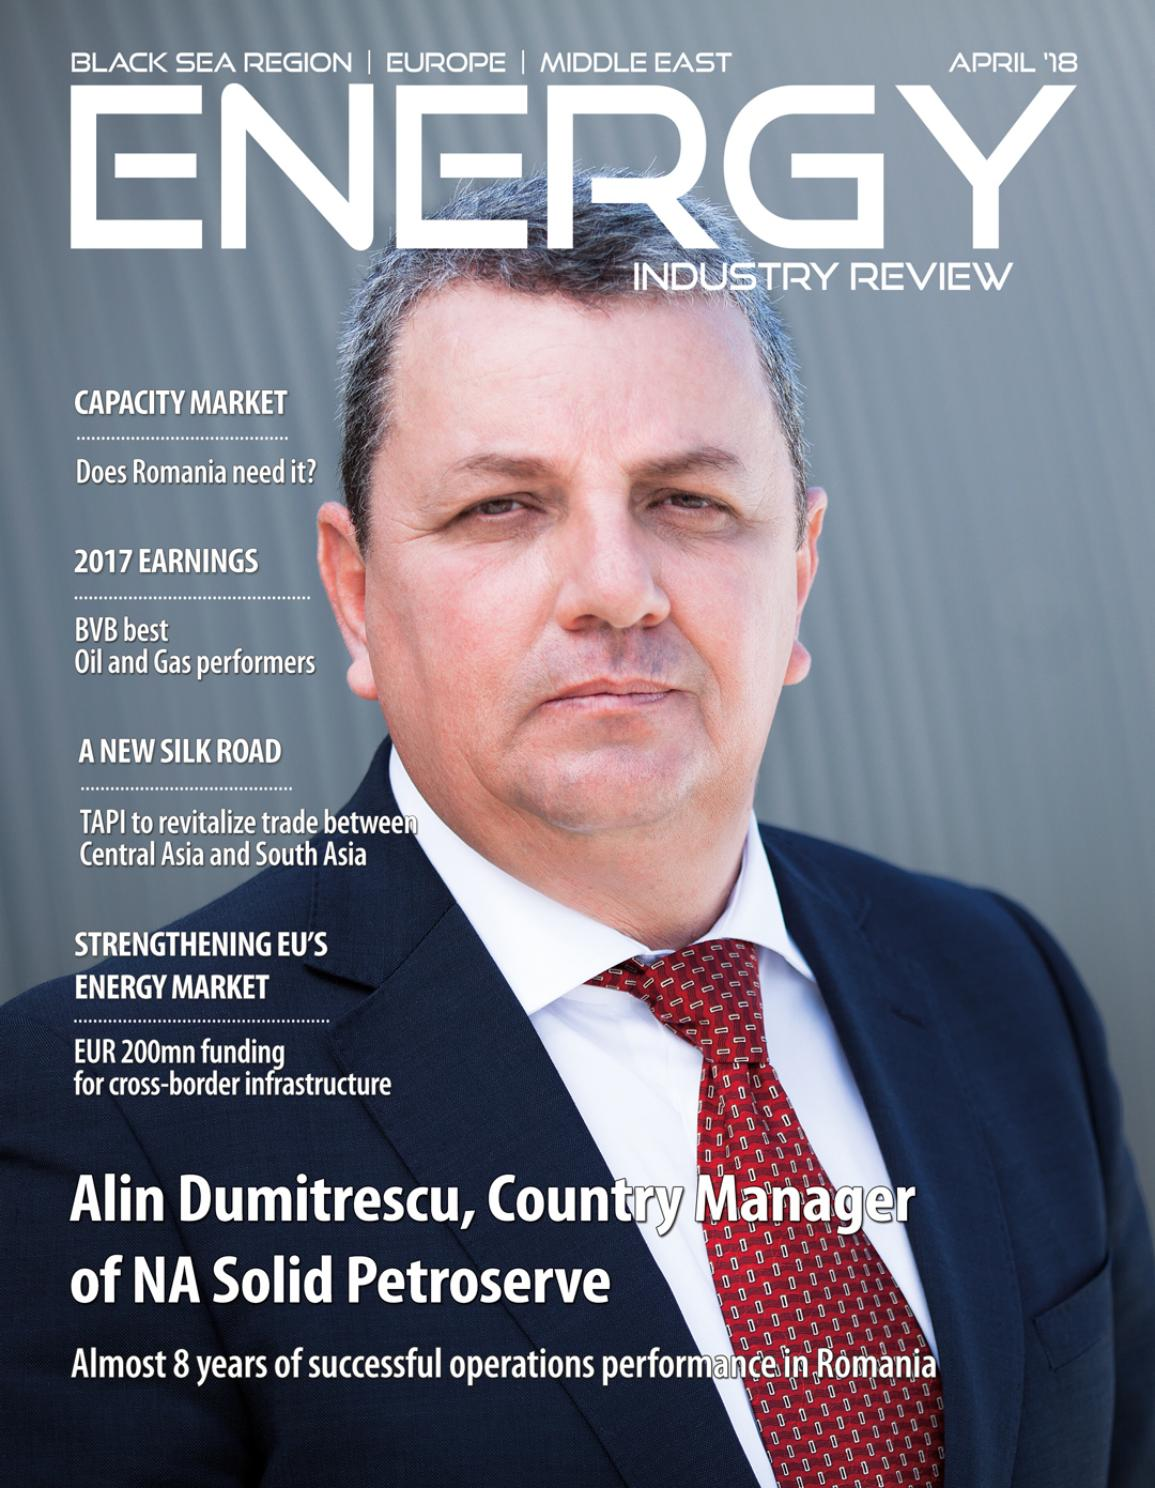 Anastasia Dumitrescu energy industry review - april 2018energy industry